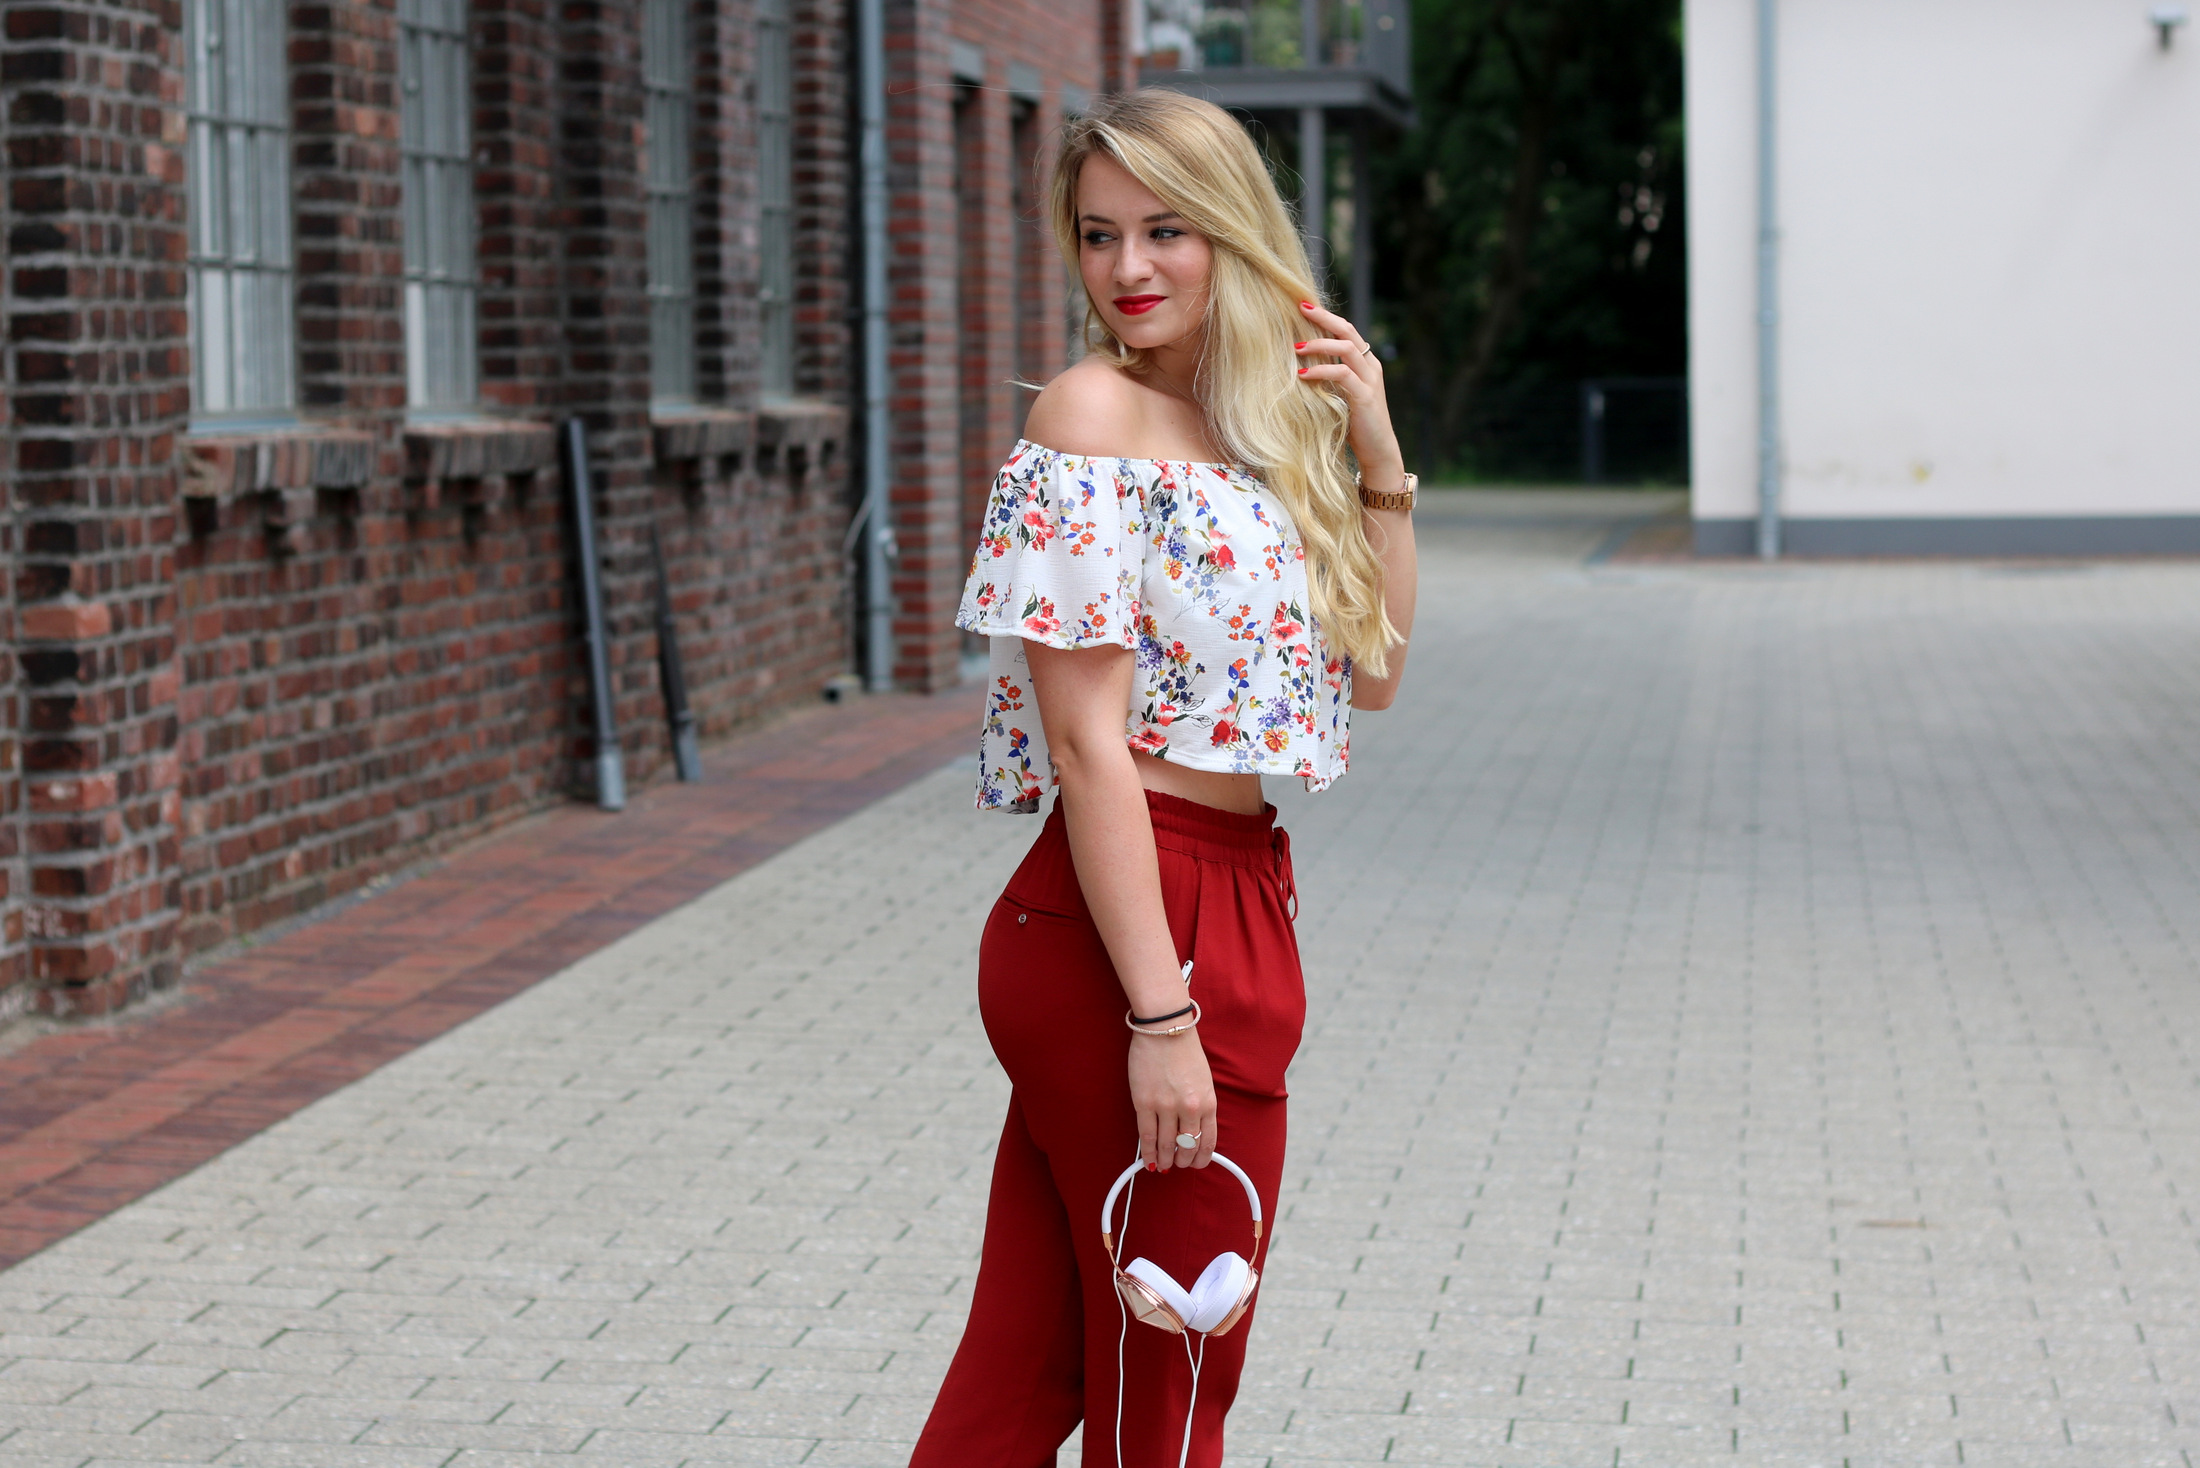 frends-headphones-kopfhörer-audio-musik-music-outfit-summer-early-look-zara-mrsbrightside (4)